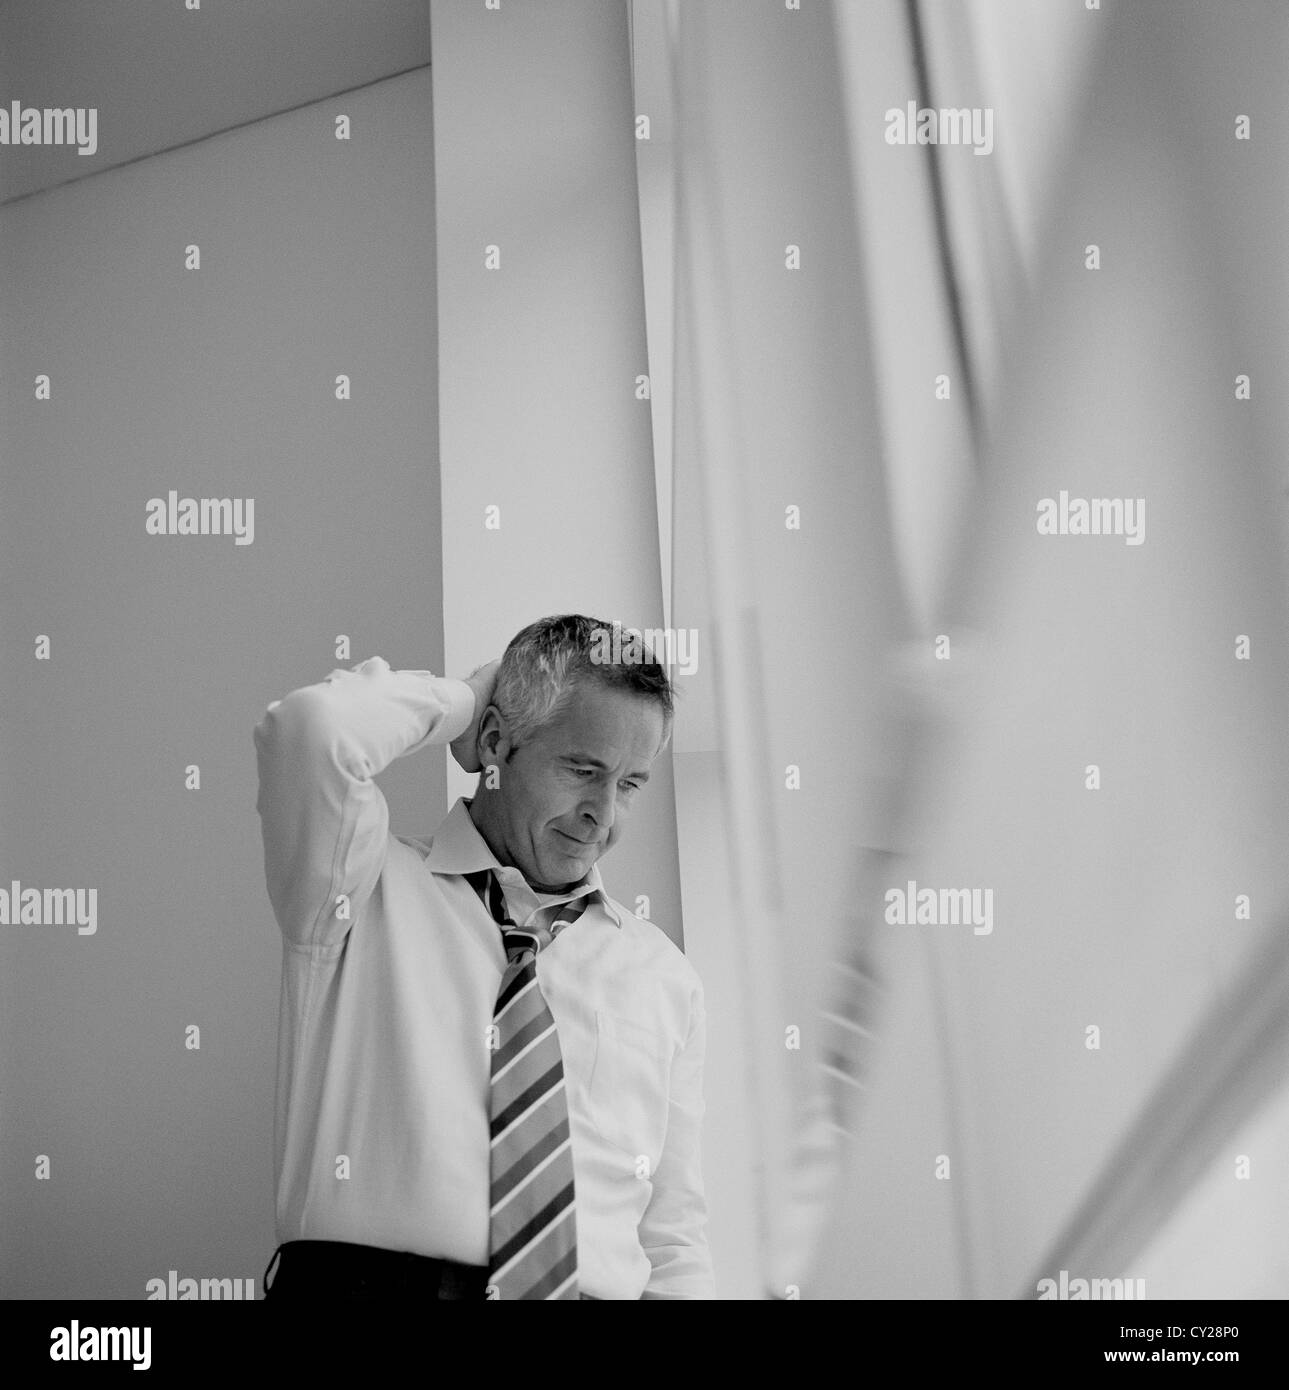 black and white business man frustration stressed businessman License free except ads and outdoor billboards Stock Photo